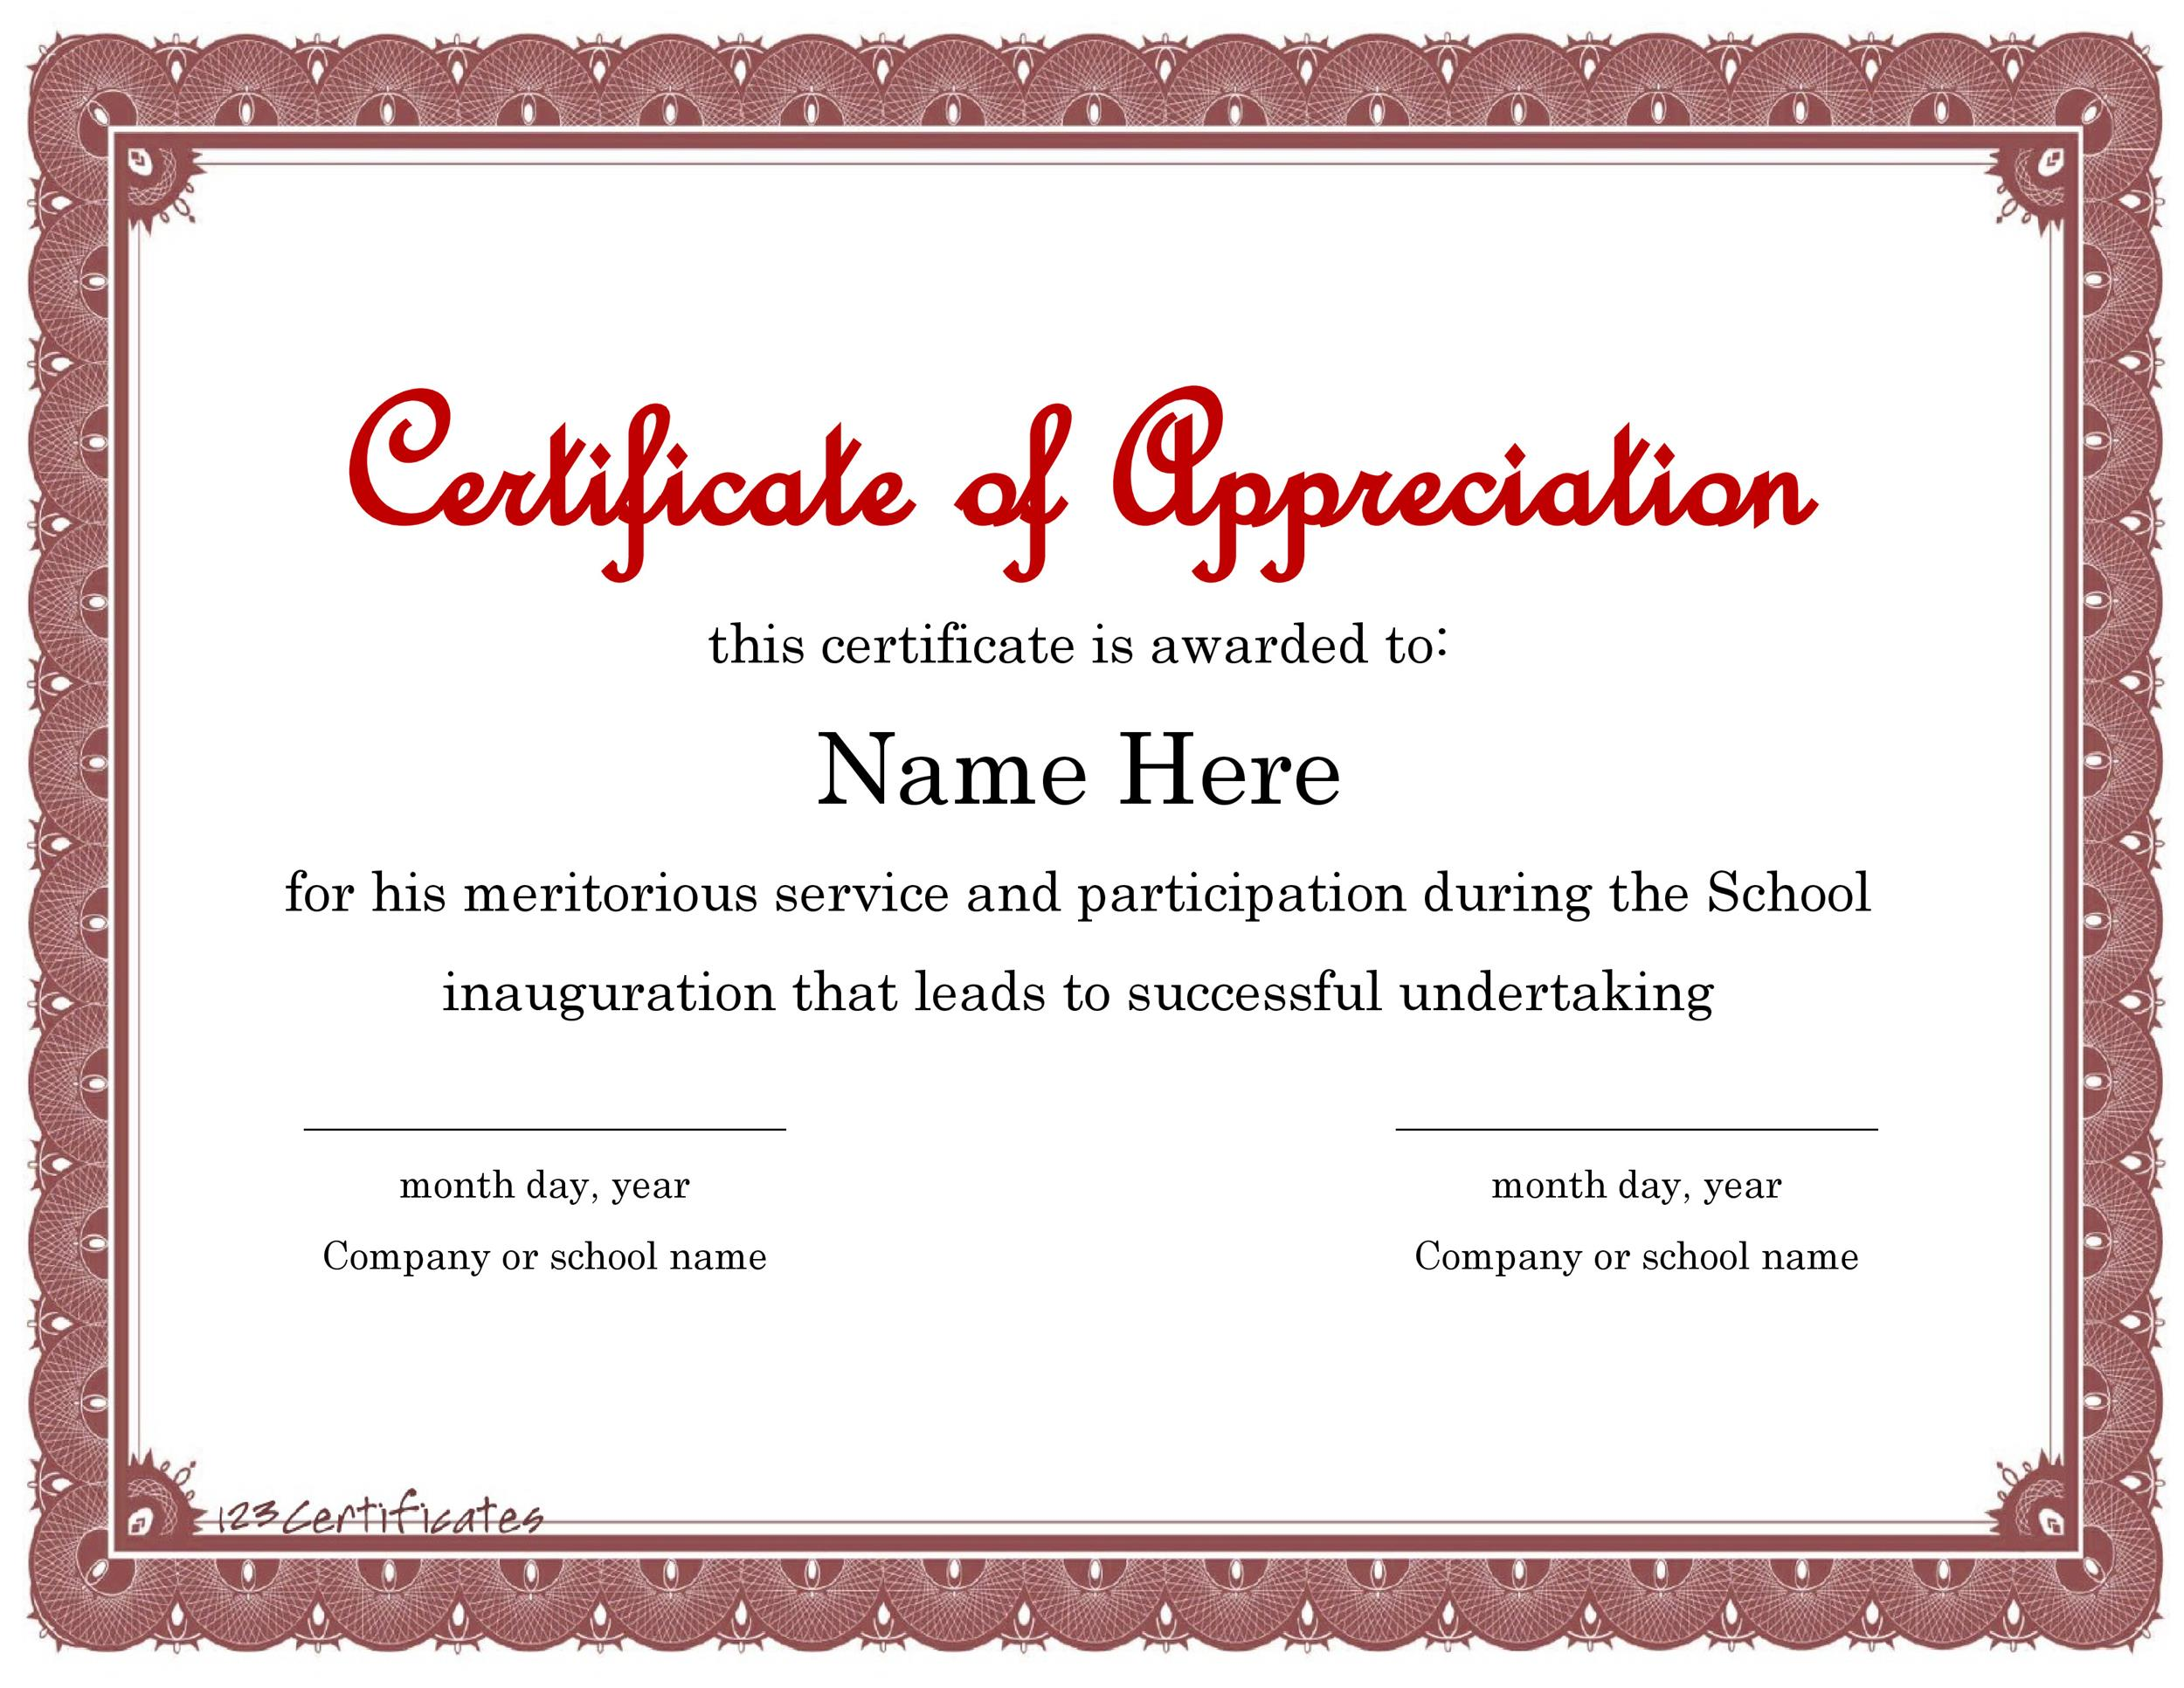 30 Free Certificate of Appreciation Templates and Letters – Oath of Office Template